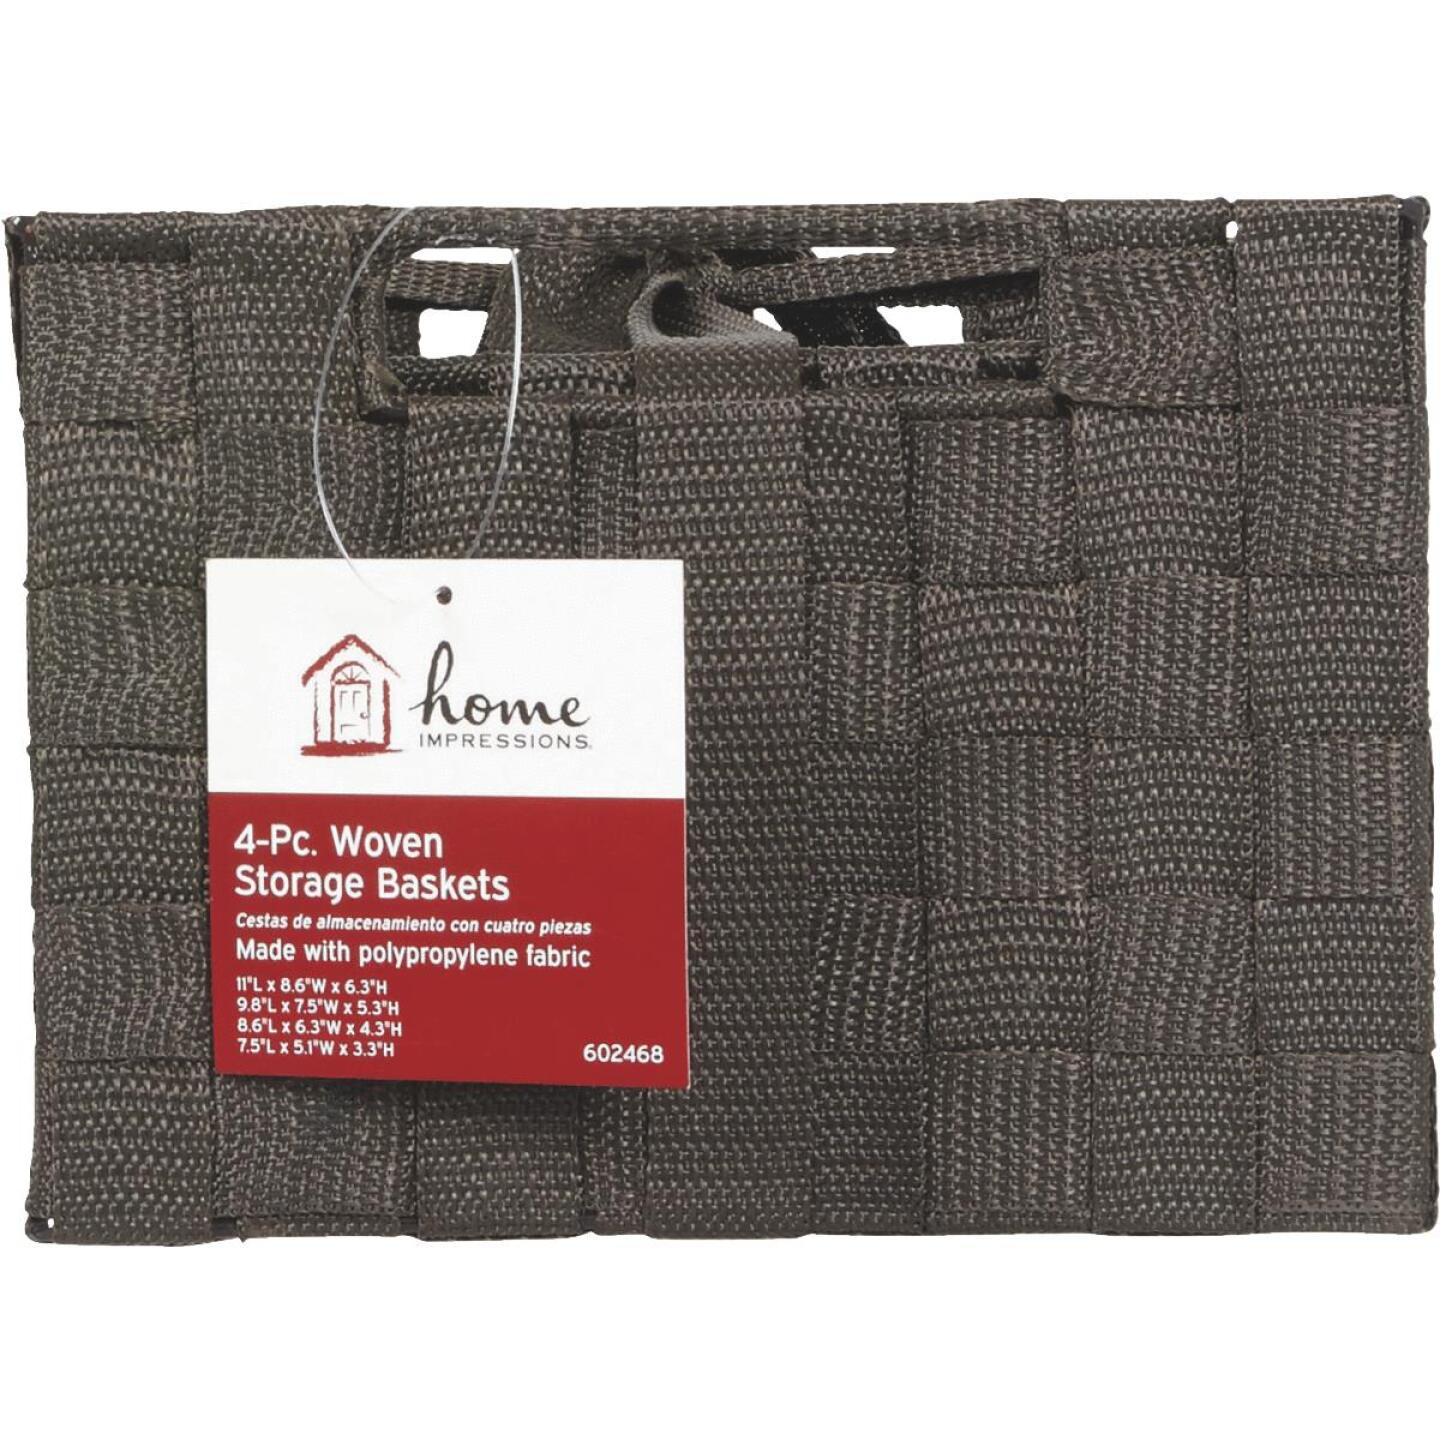 Home Impressions 4-Piece Woven Storage Basket Set, Brown Image 2